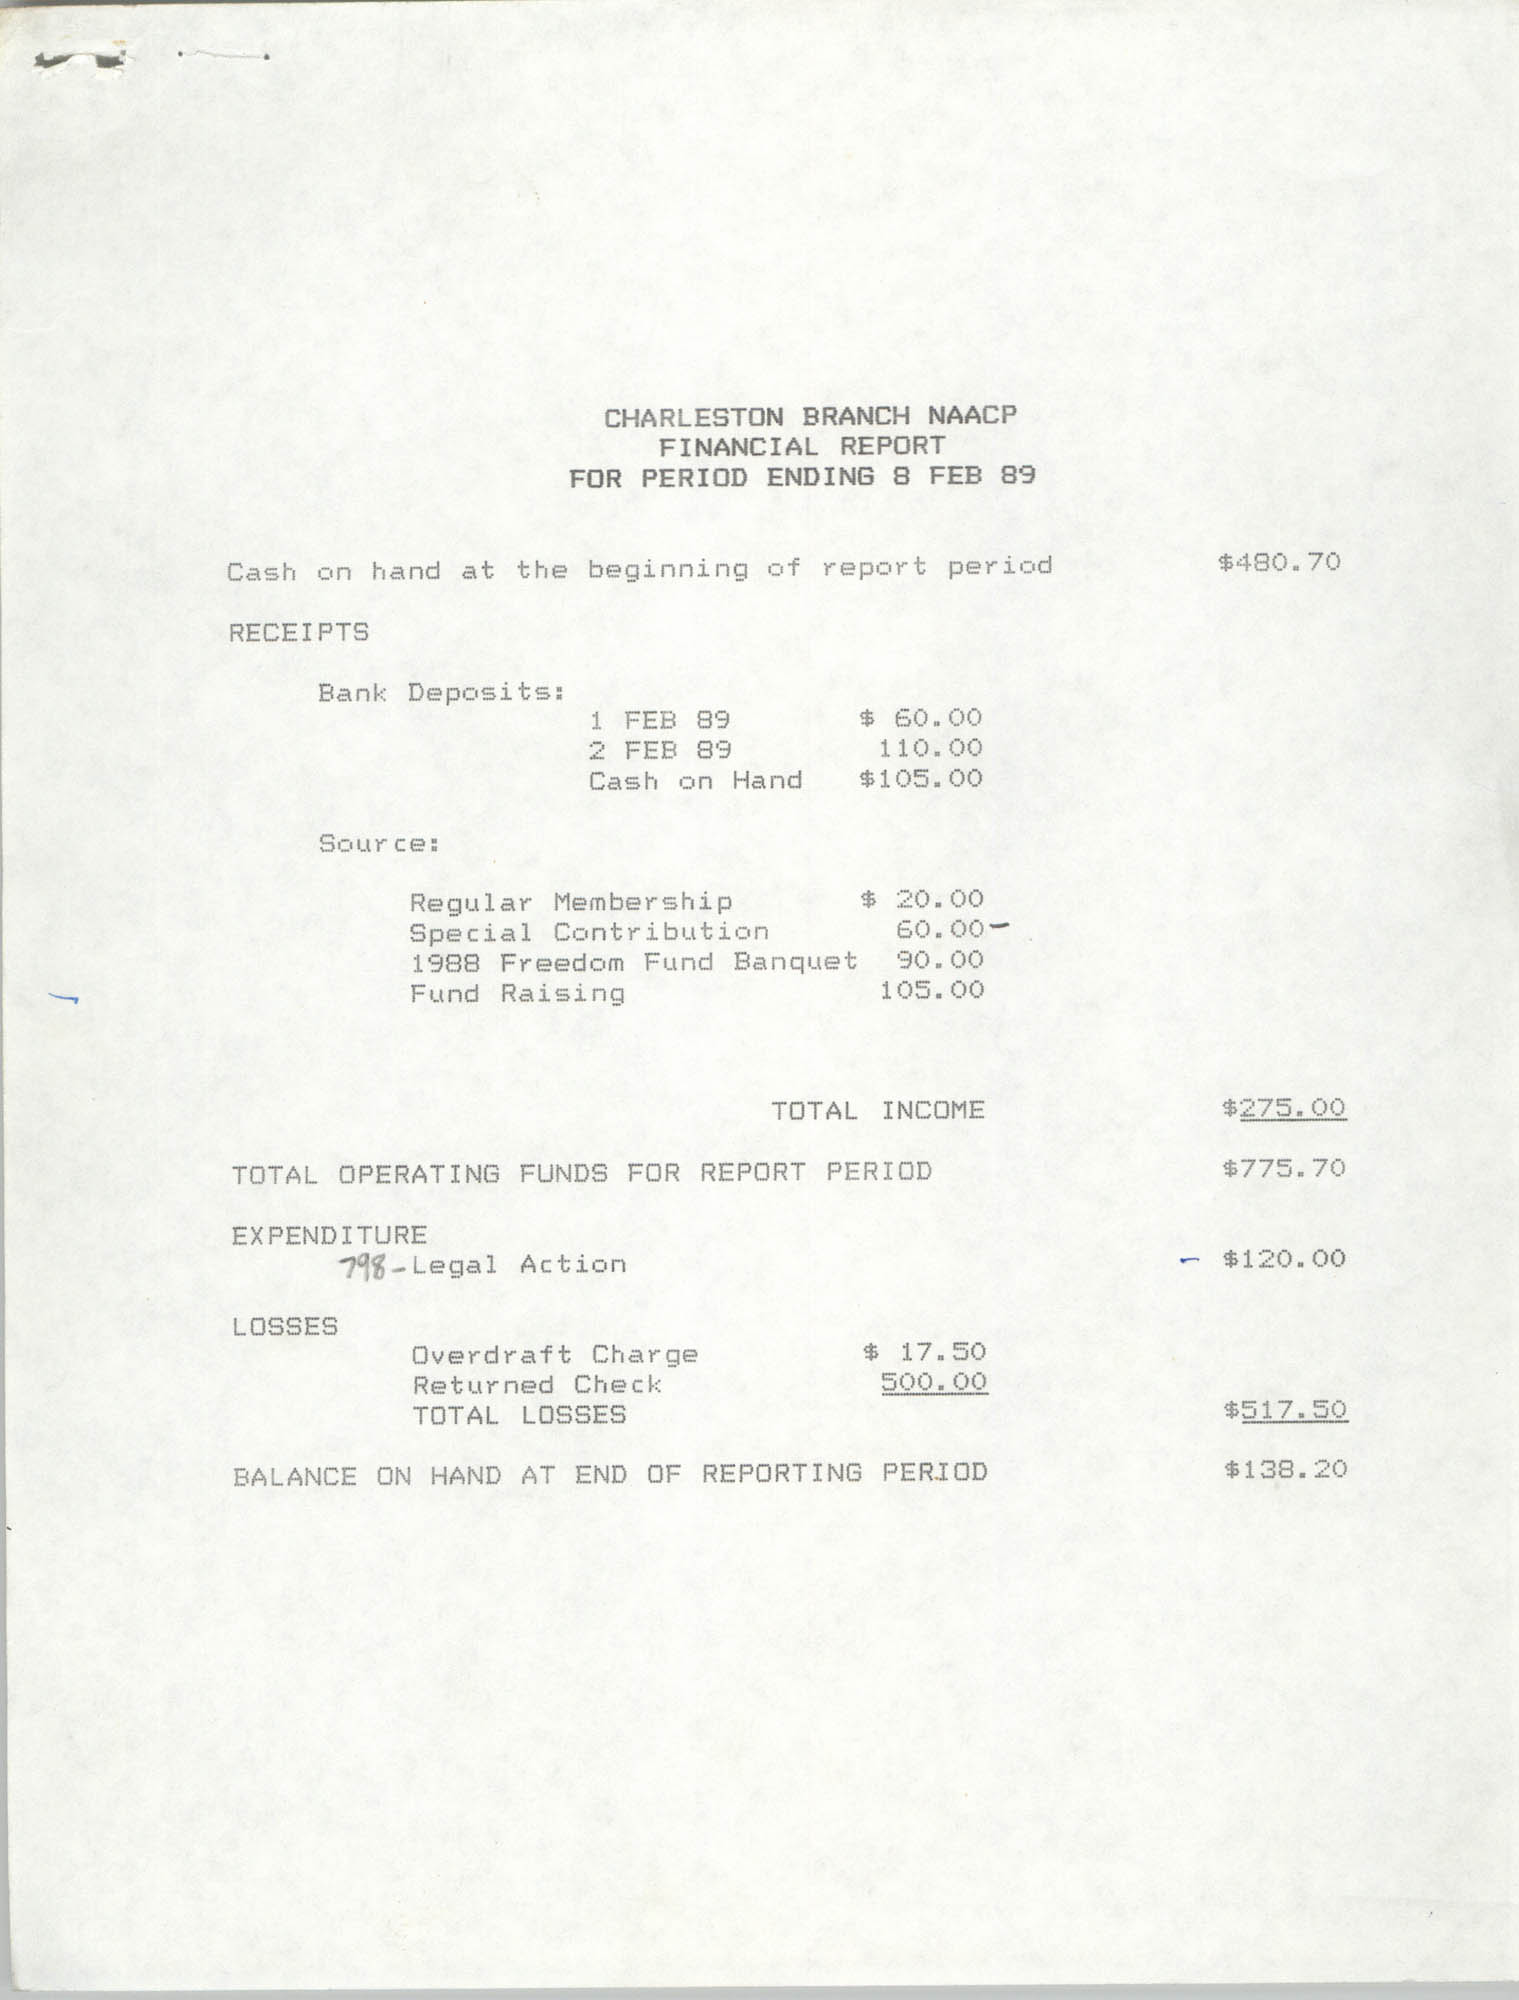 Charleston Branch of the NAACP Financial Report, February 8, 1989